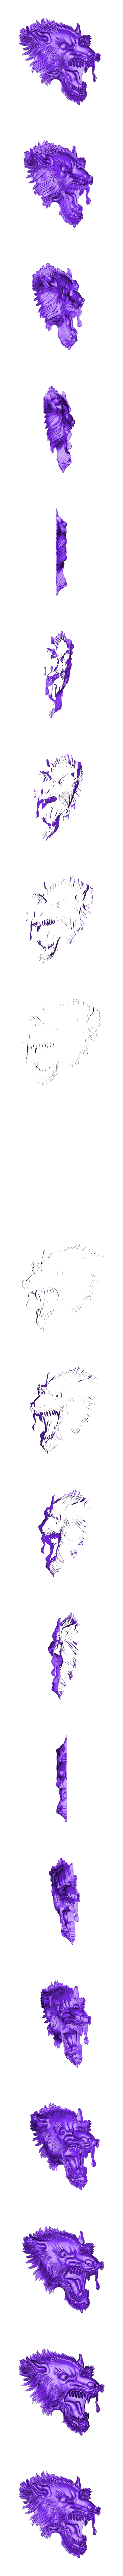 wolfhead2.stl Download free OBJ file eight models of wolf heads  • 3D printable model, stlfilesfree